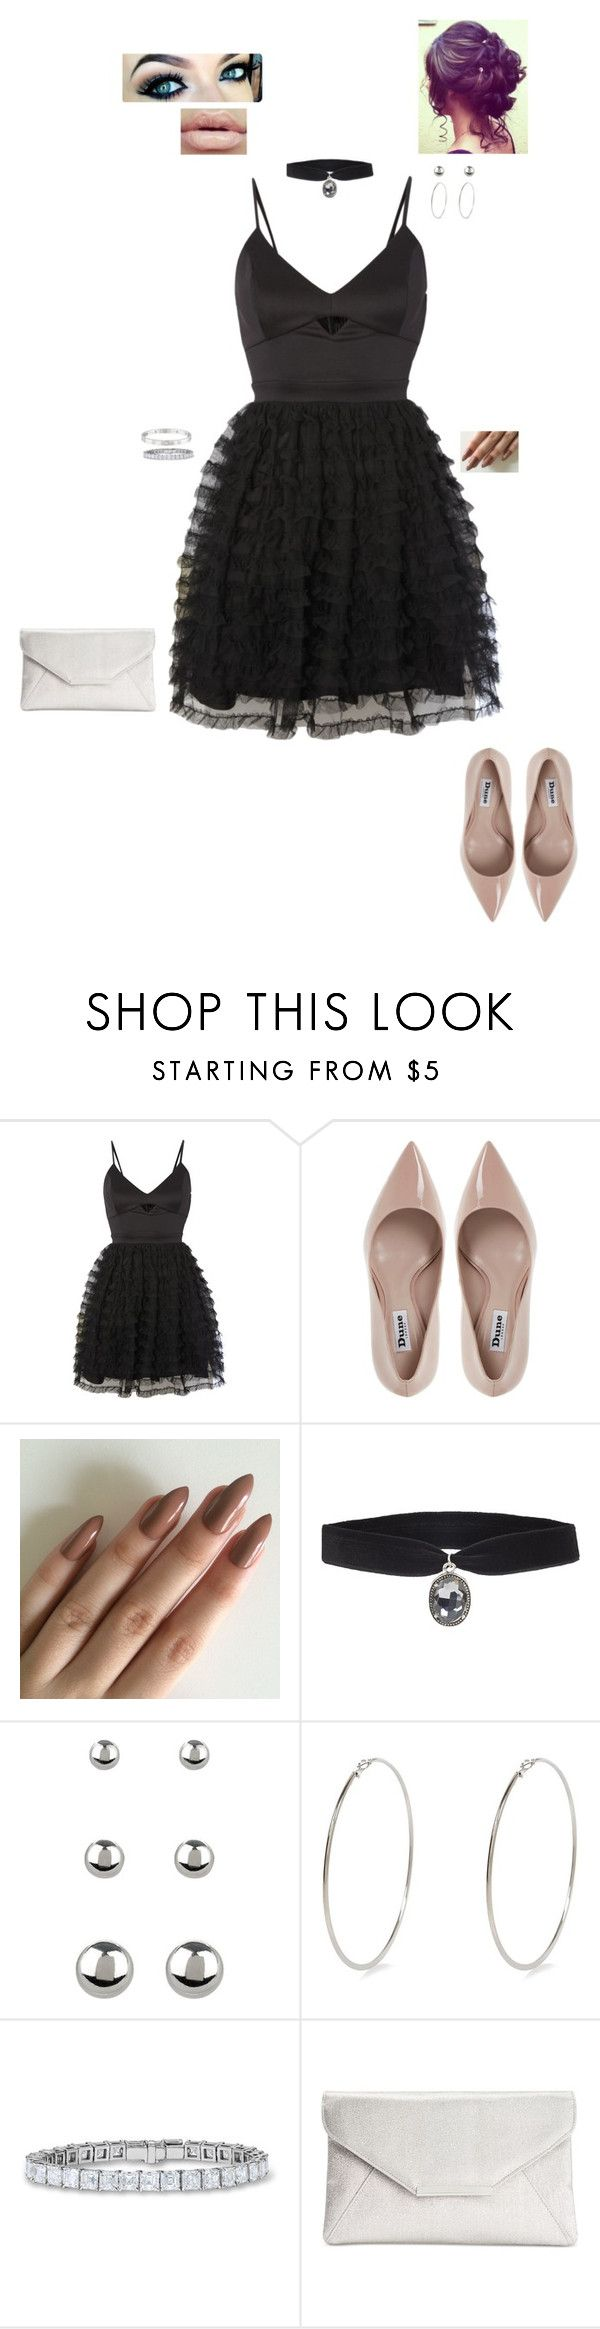 """""""15.8.16"""" by jesshorne2016 ❤ liked on Polyvore featuring Lipsy, Dune, New Look, Accessorize, River Island, Style & Co. and Cartier"""